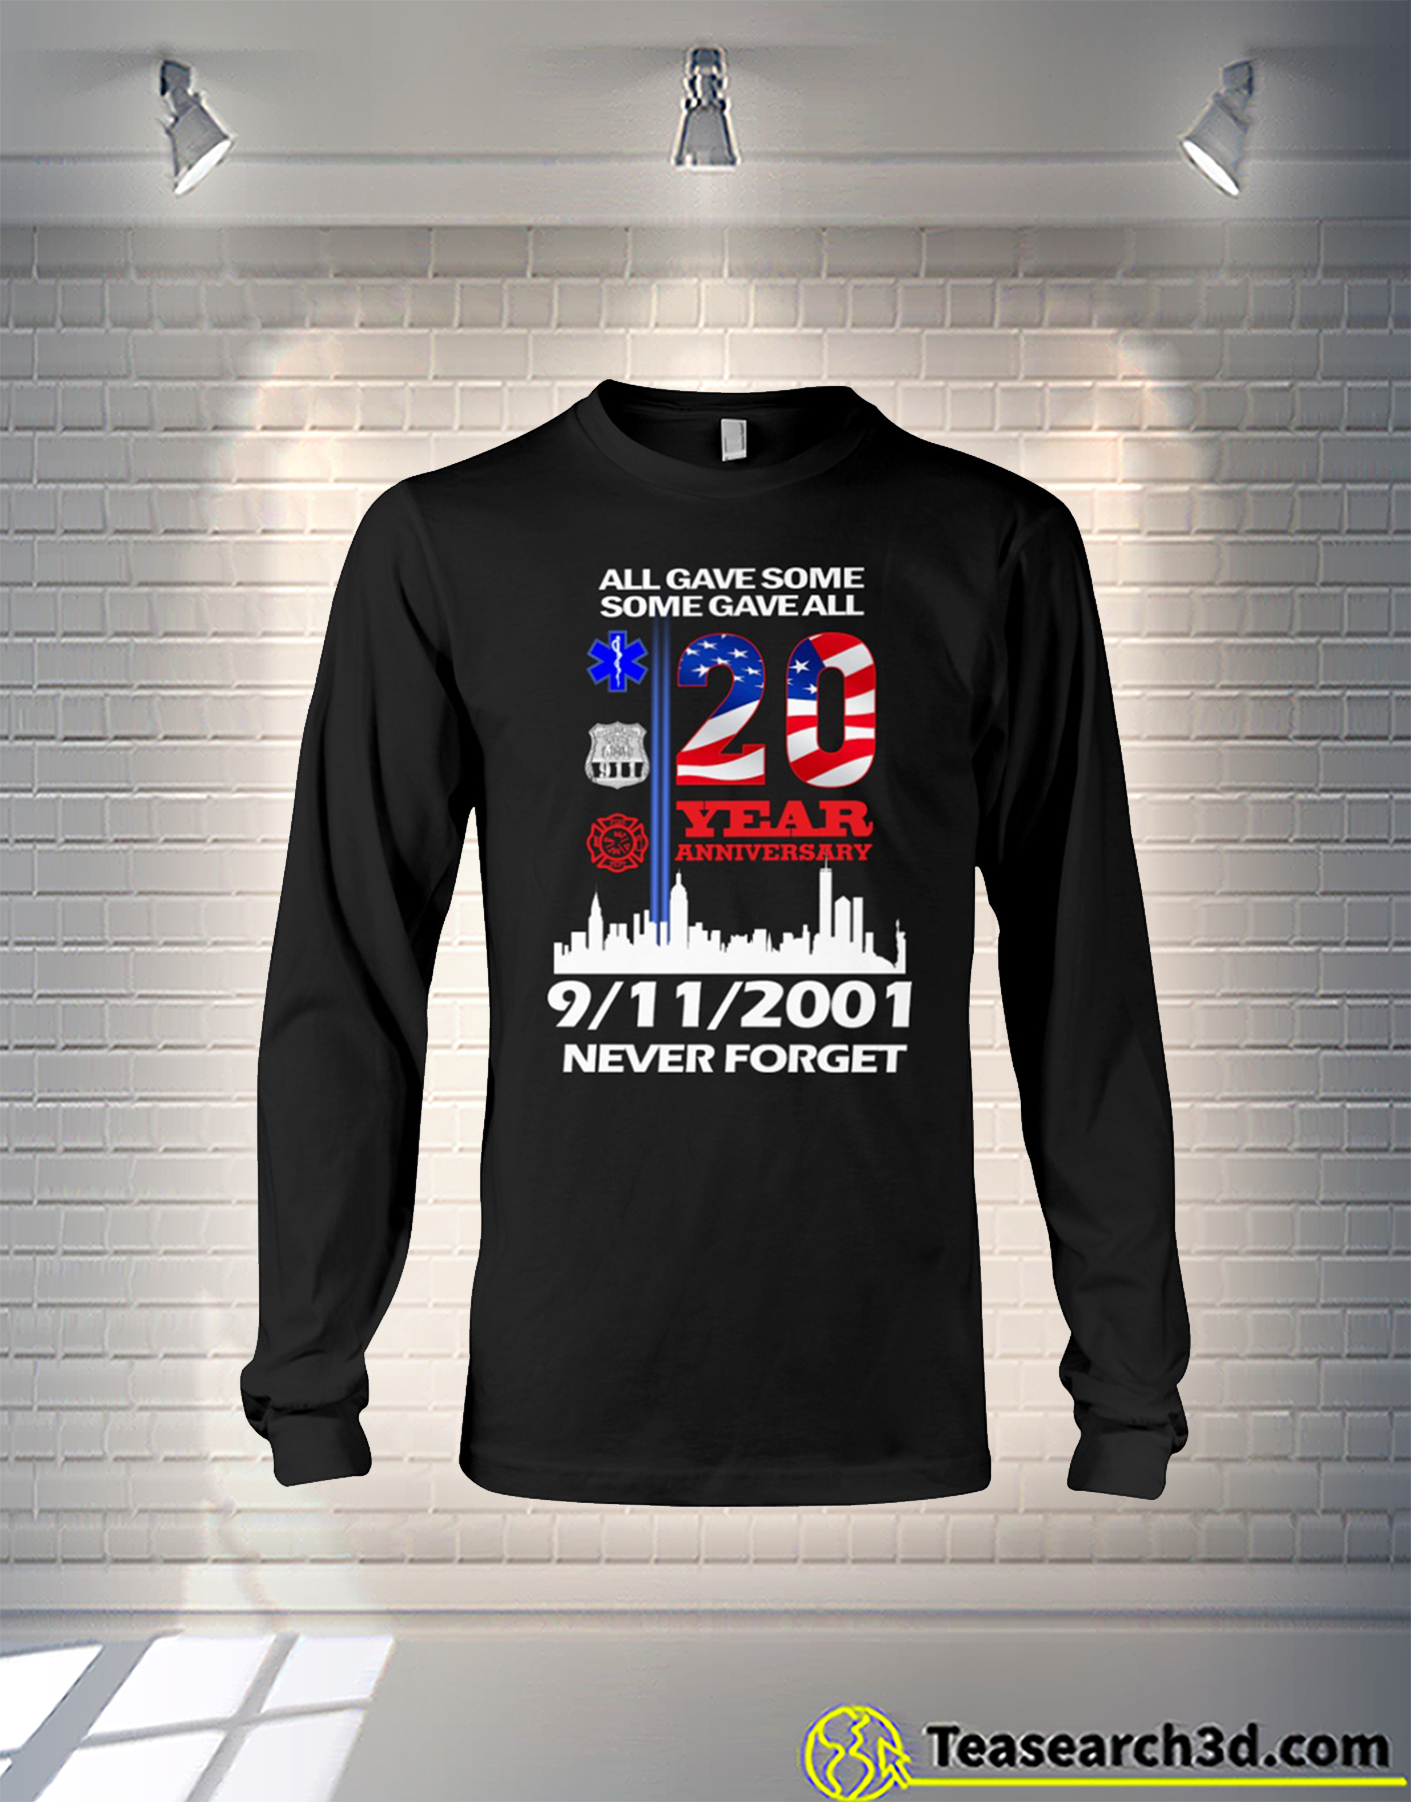 United States All gave some some gave all 20 year anniversary 9-11-2001 never forget long sleeve